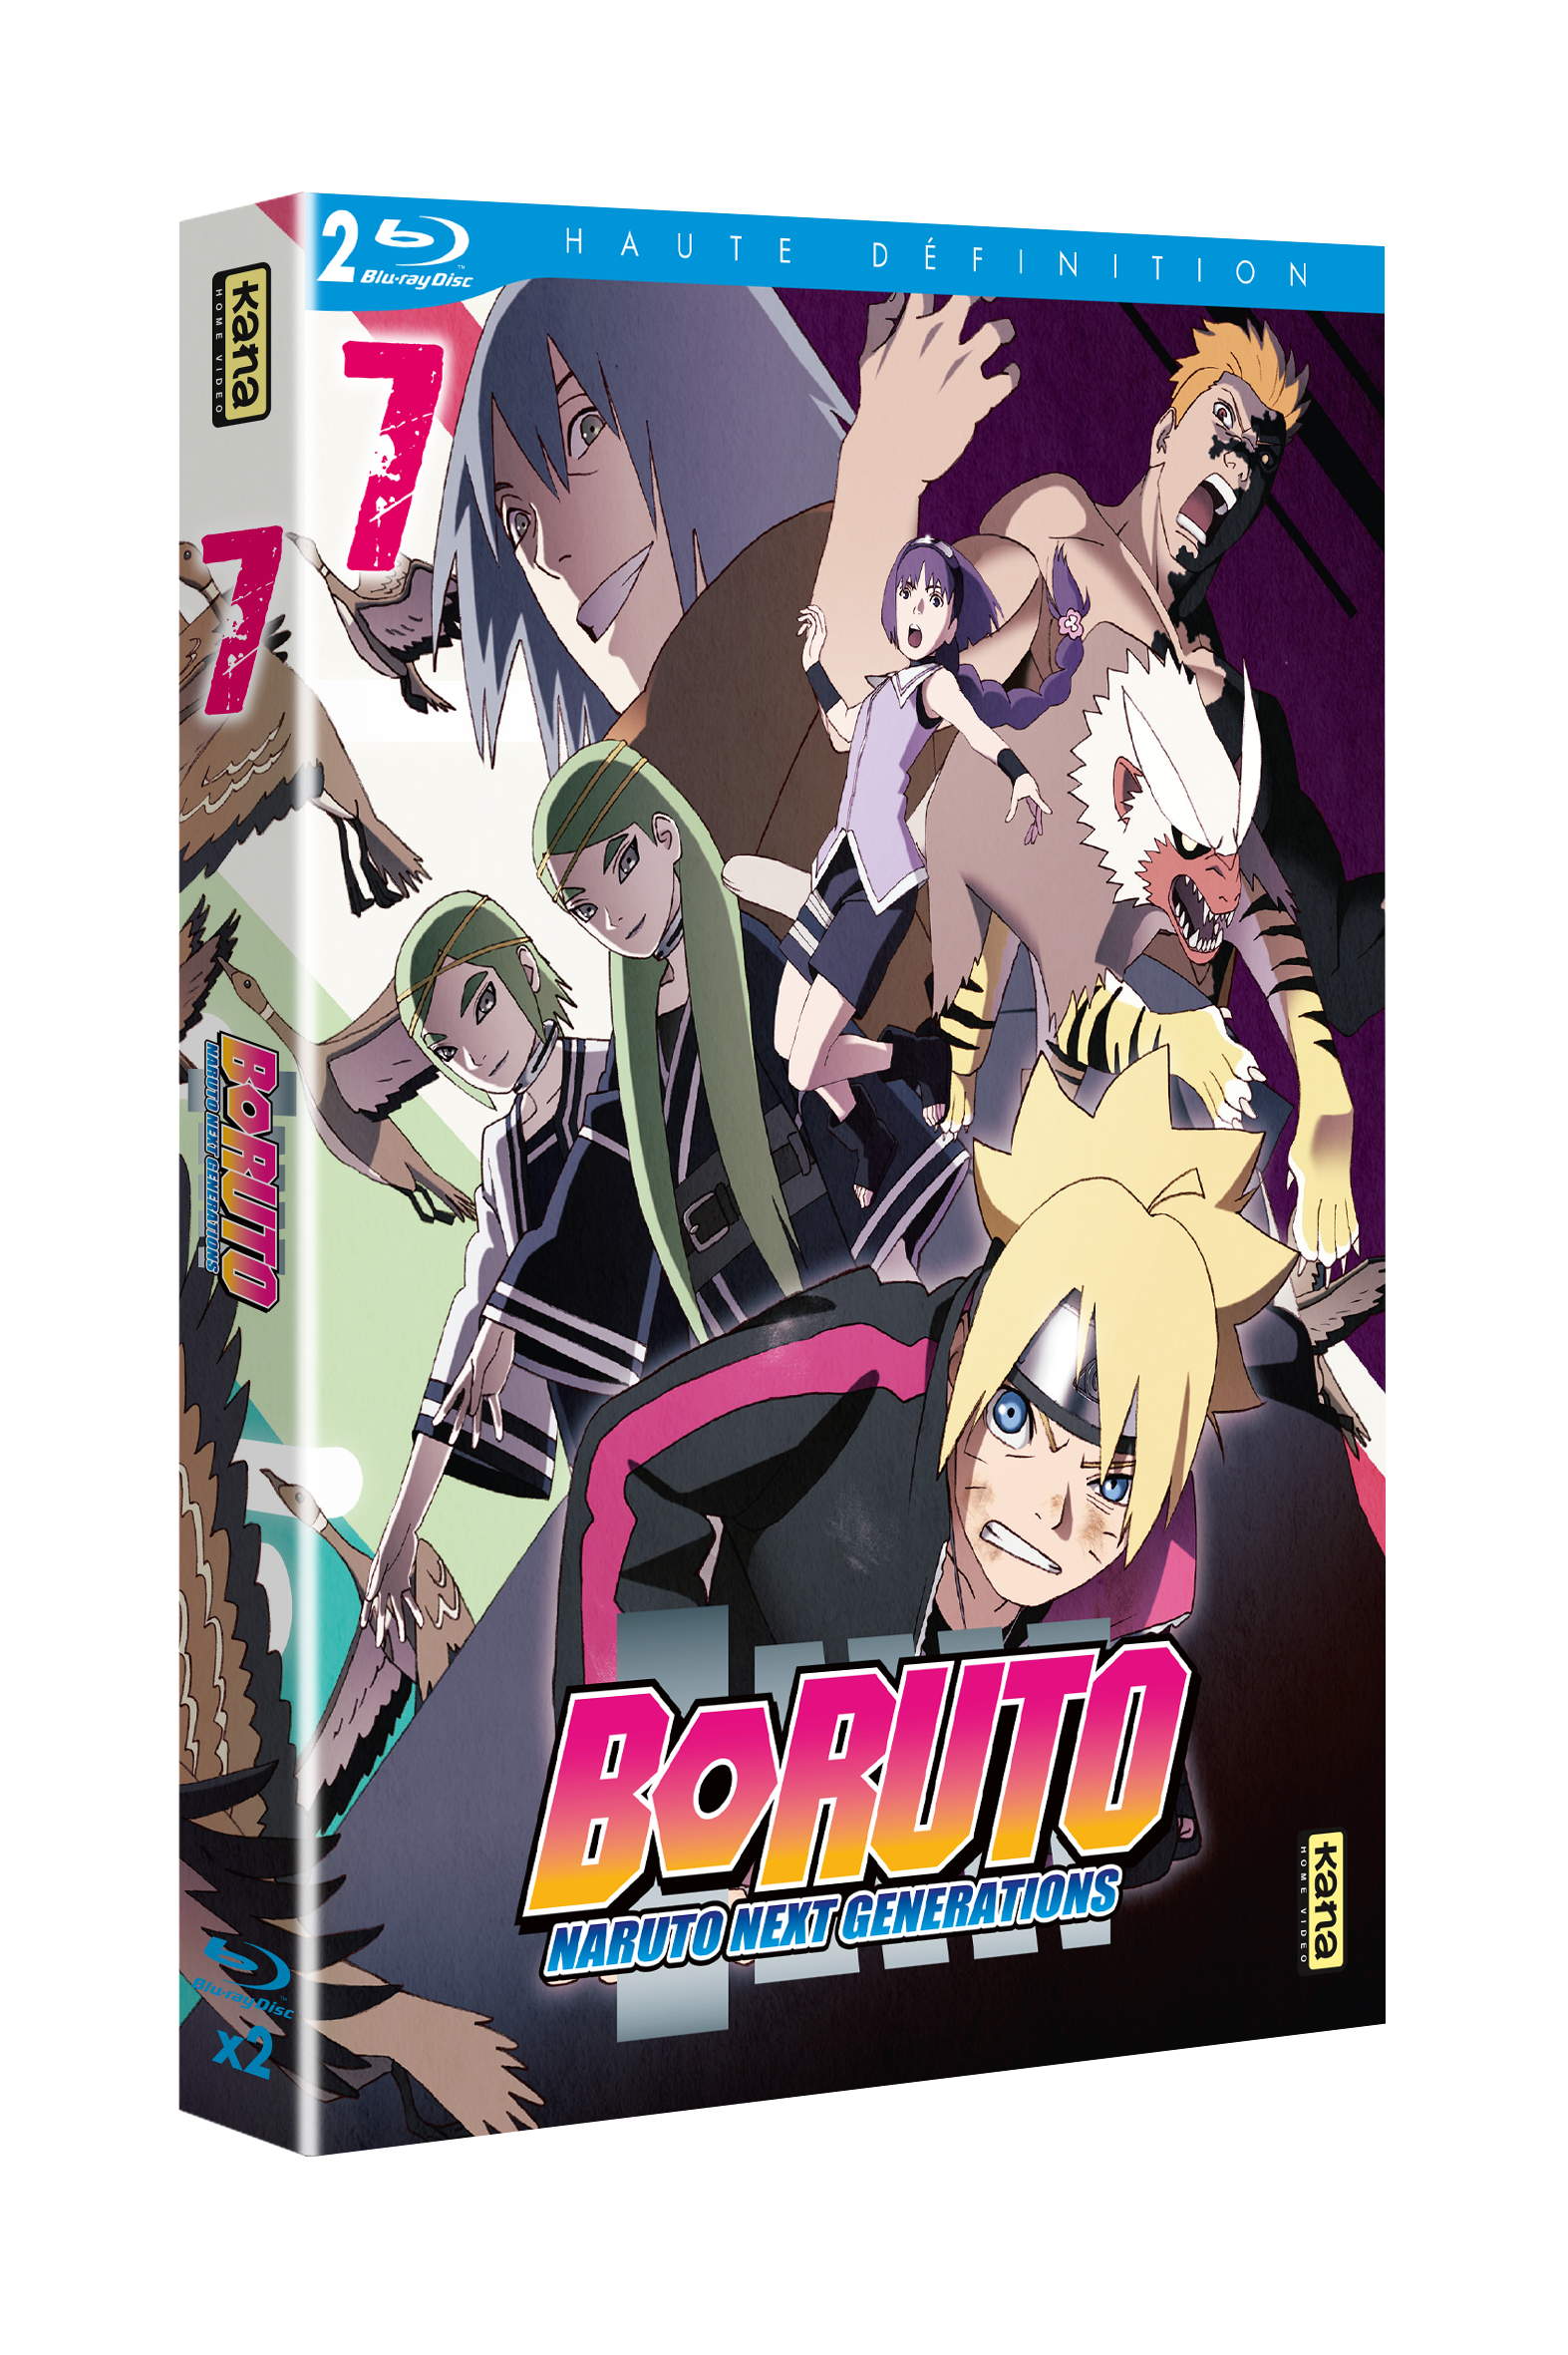 Boruto Naruto Next Generation Vol.7 – Blu-ray